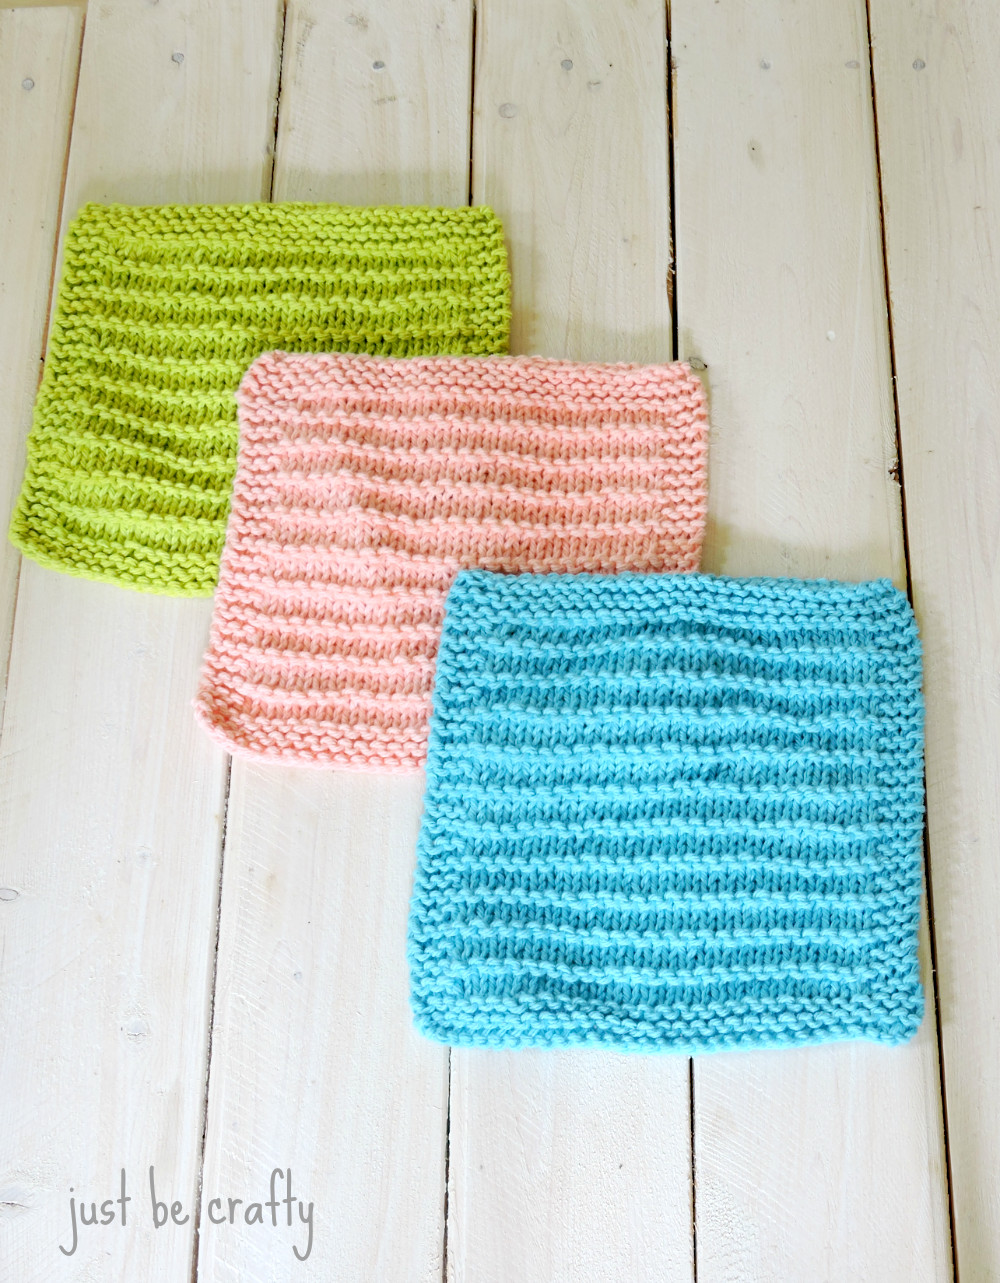 Best Of Farmhouse Kitchen Knitted Dishcloths Just Be Crafty Dishcloth Patterns Of Charming 41 Images Dishcloth Patterns